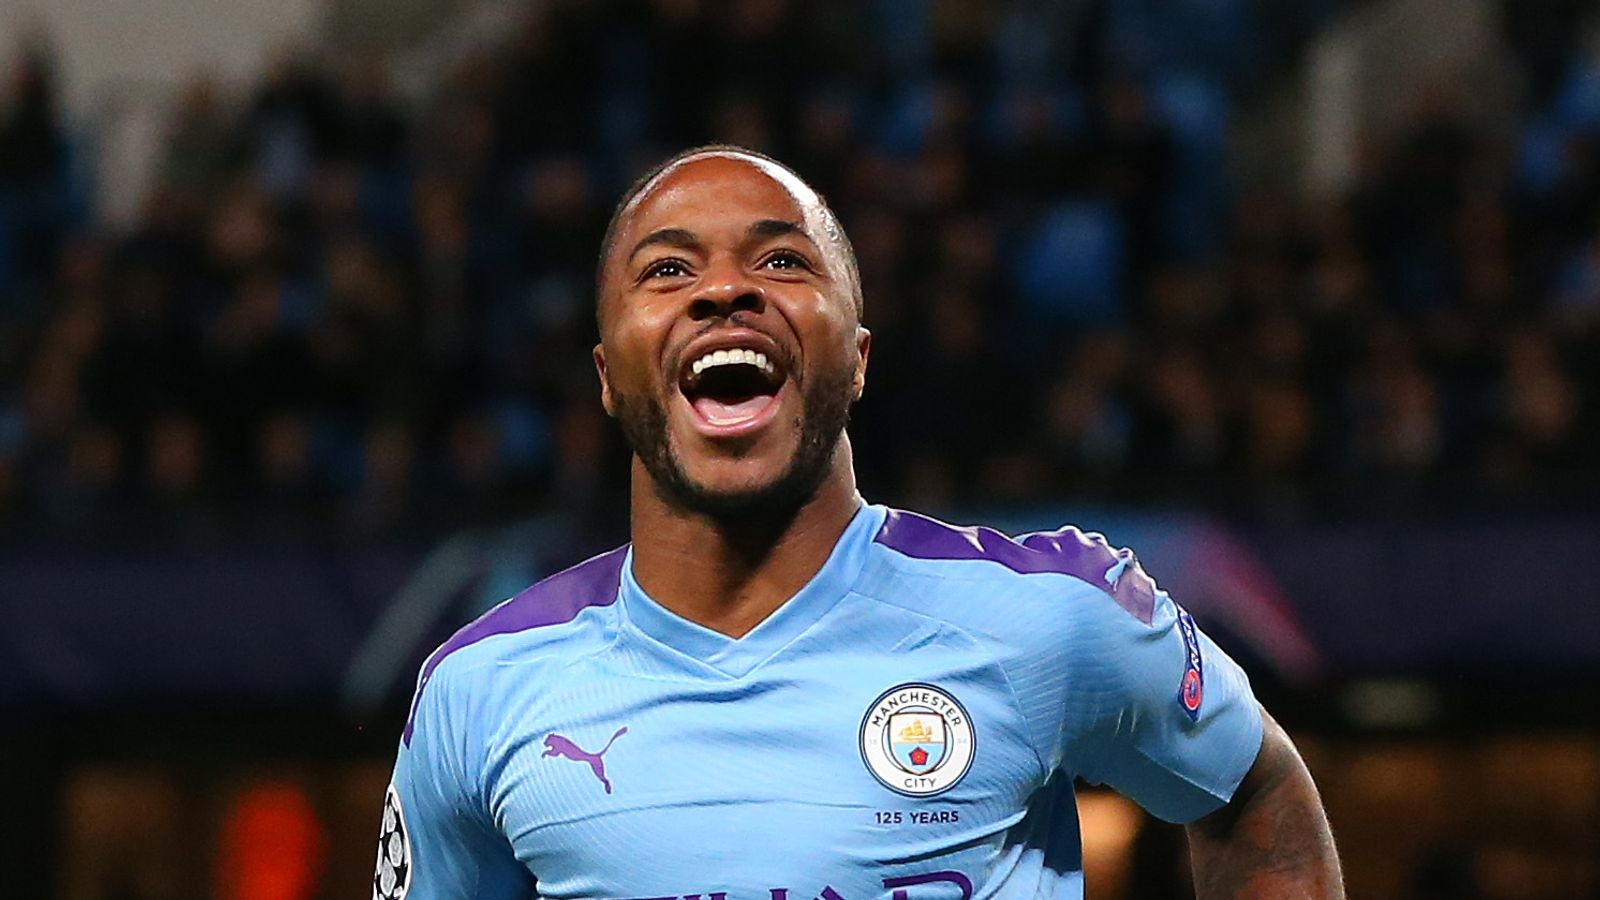 Raheem Sterling can repay me by playing badly, jokes Roy Hodgson